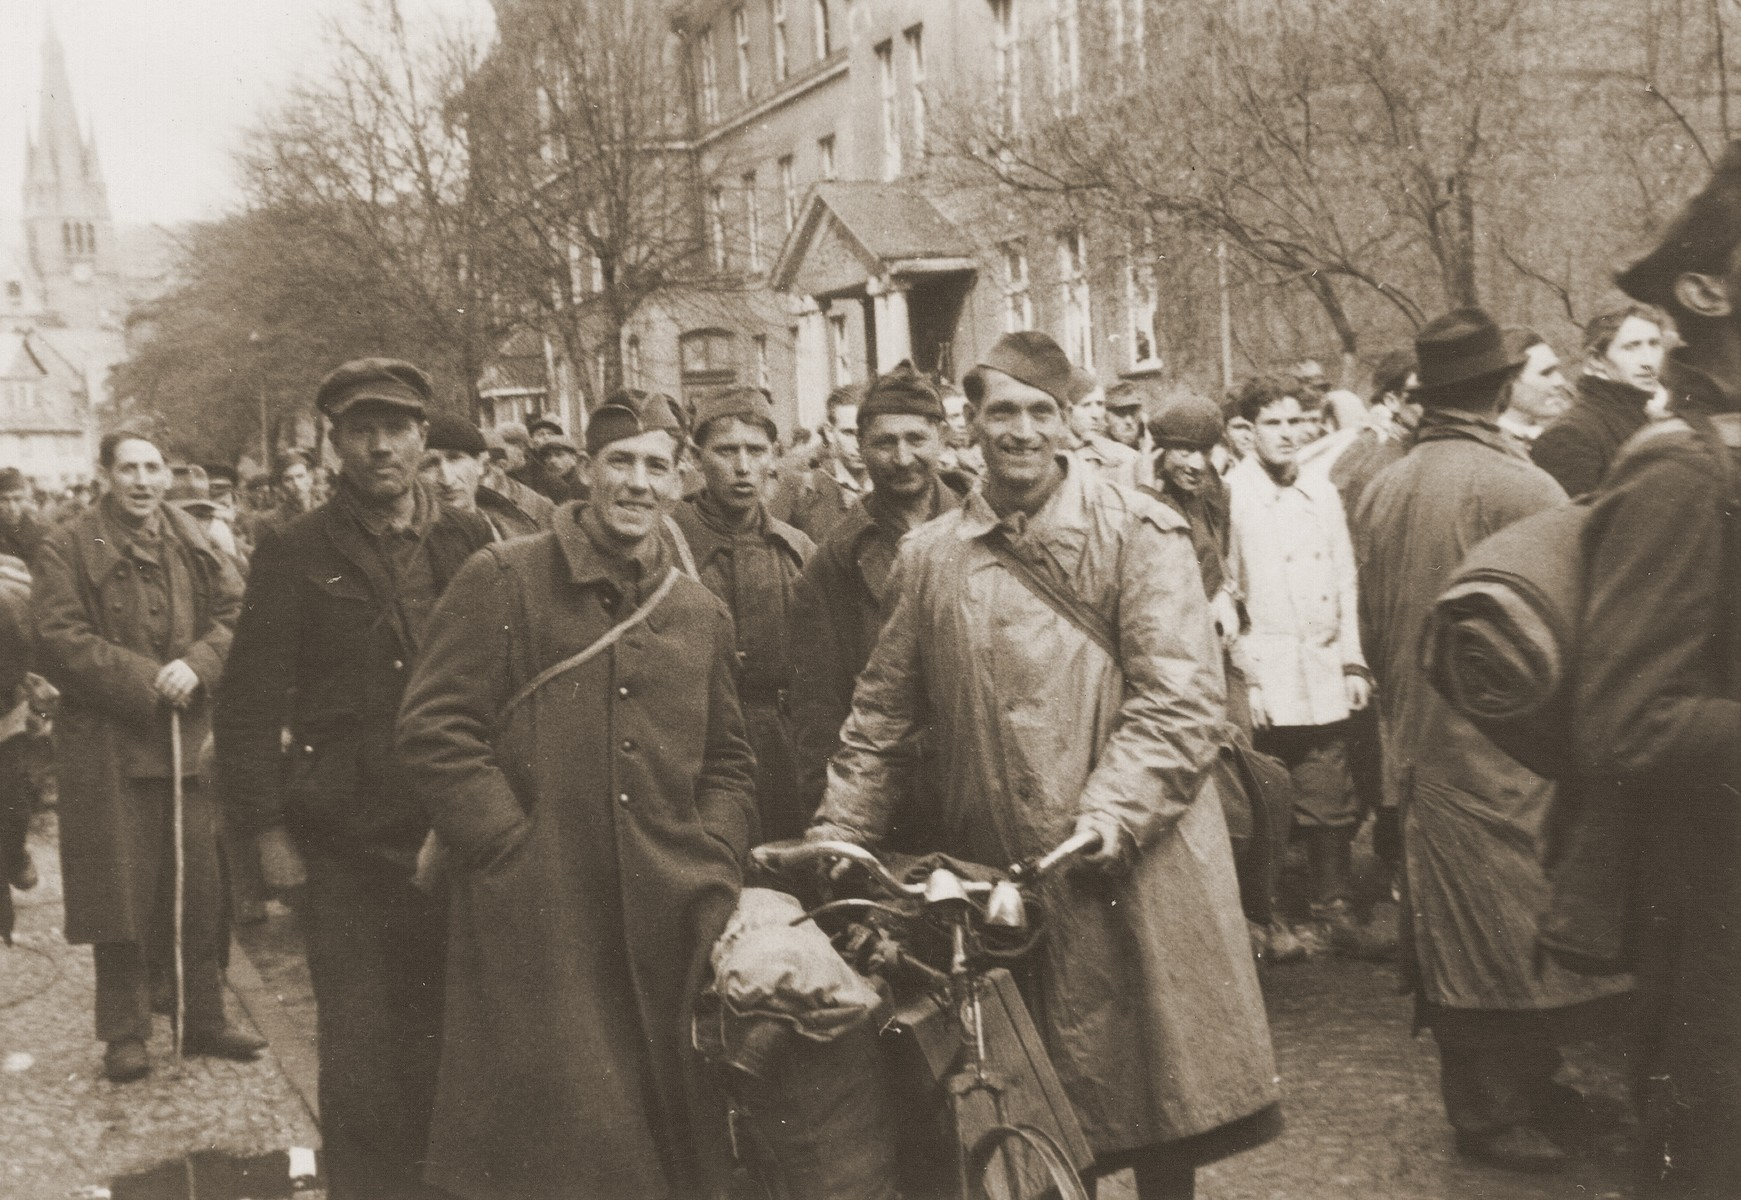 Displaced persons in the town of Dillenburg after the liberation of the area by U.S. troops.